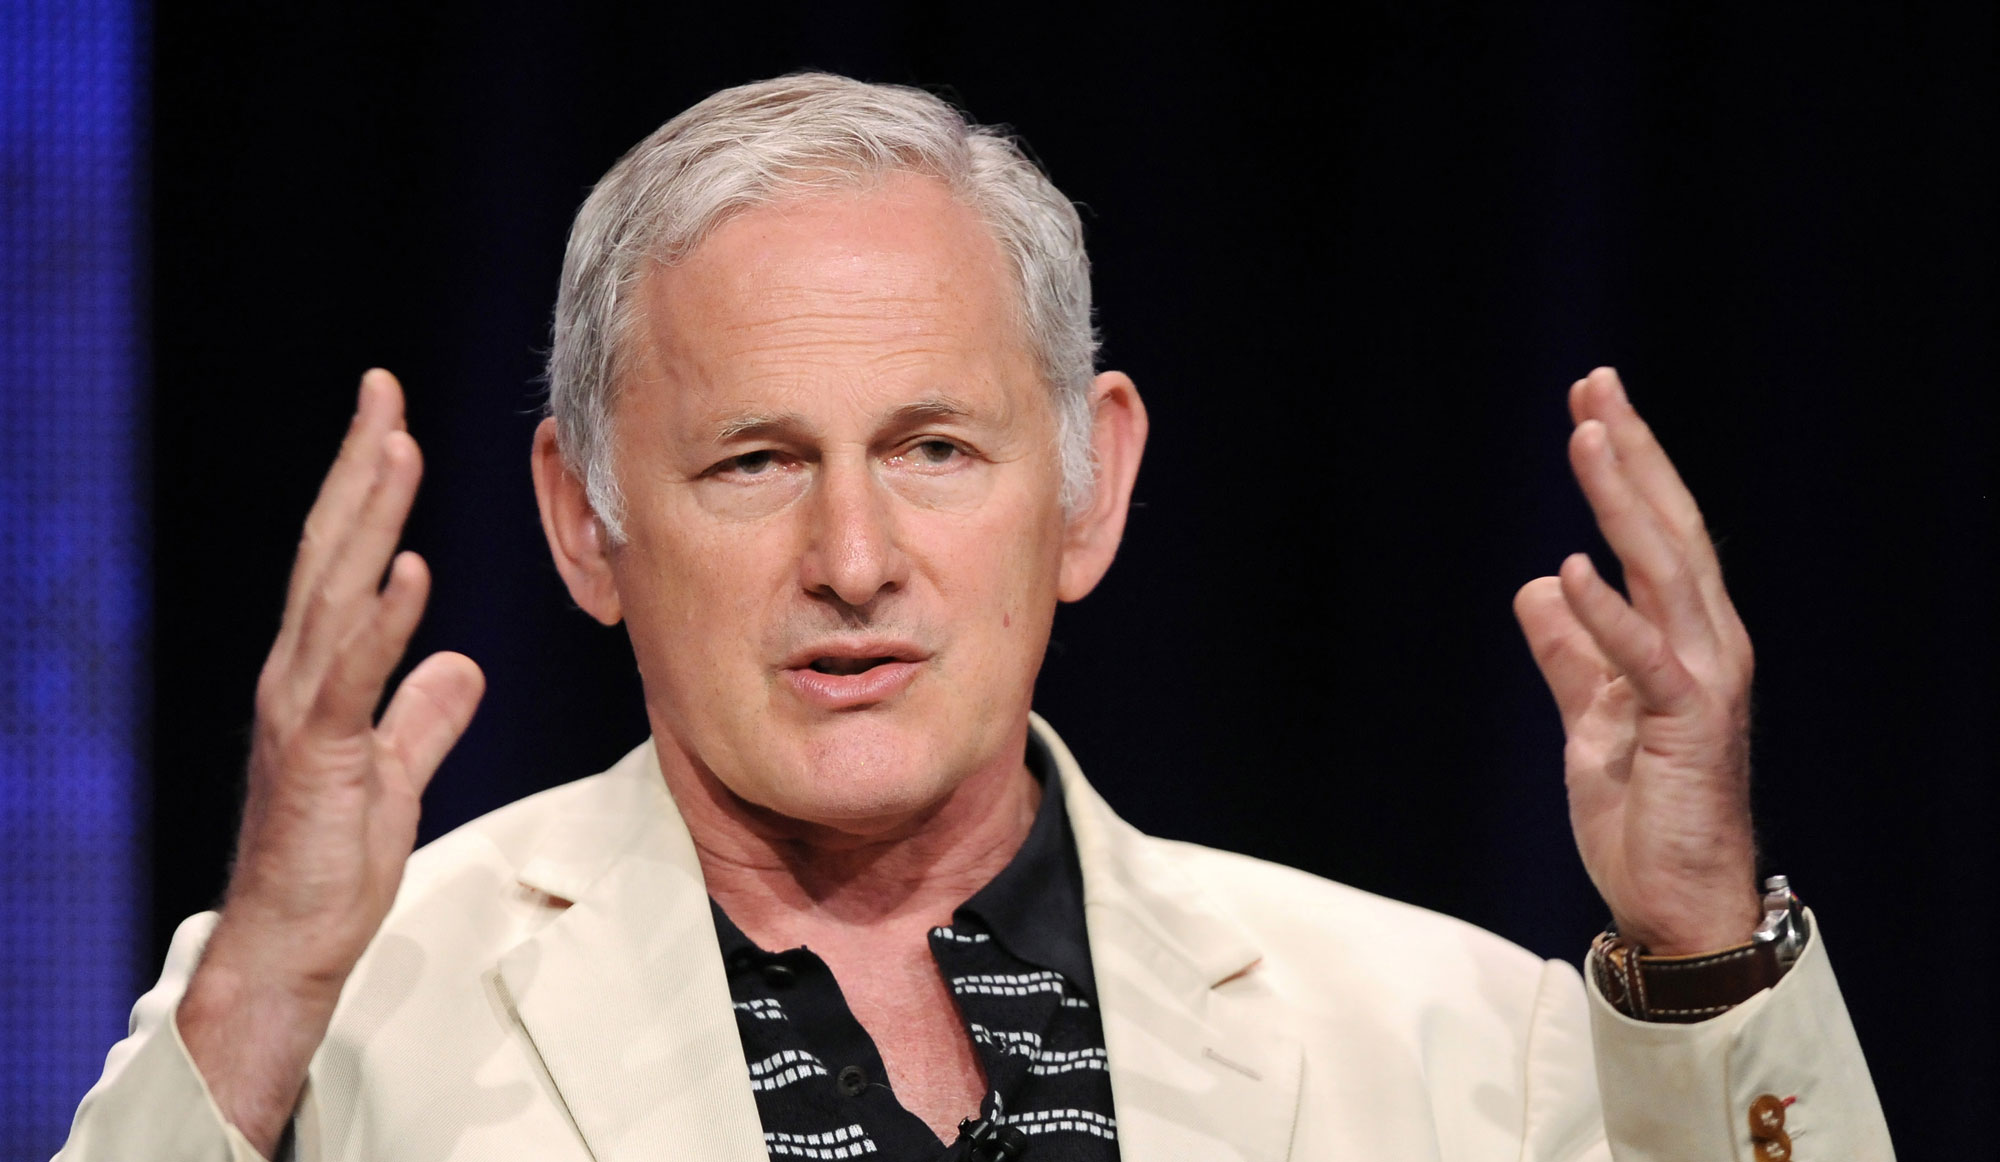 Victor Garber fait son Coming-Out